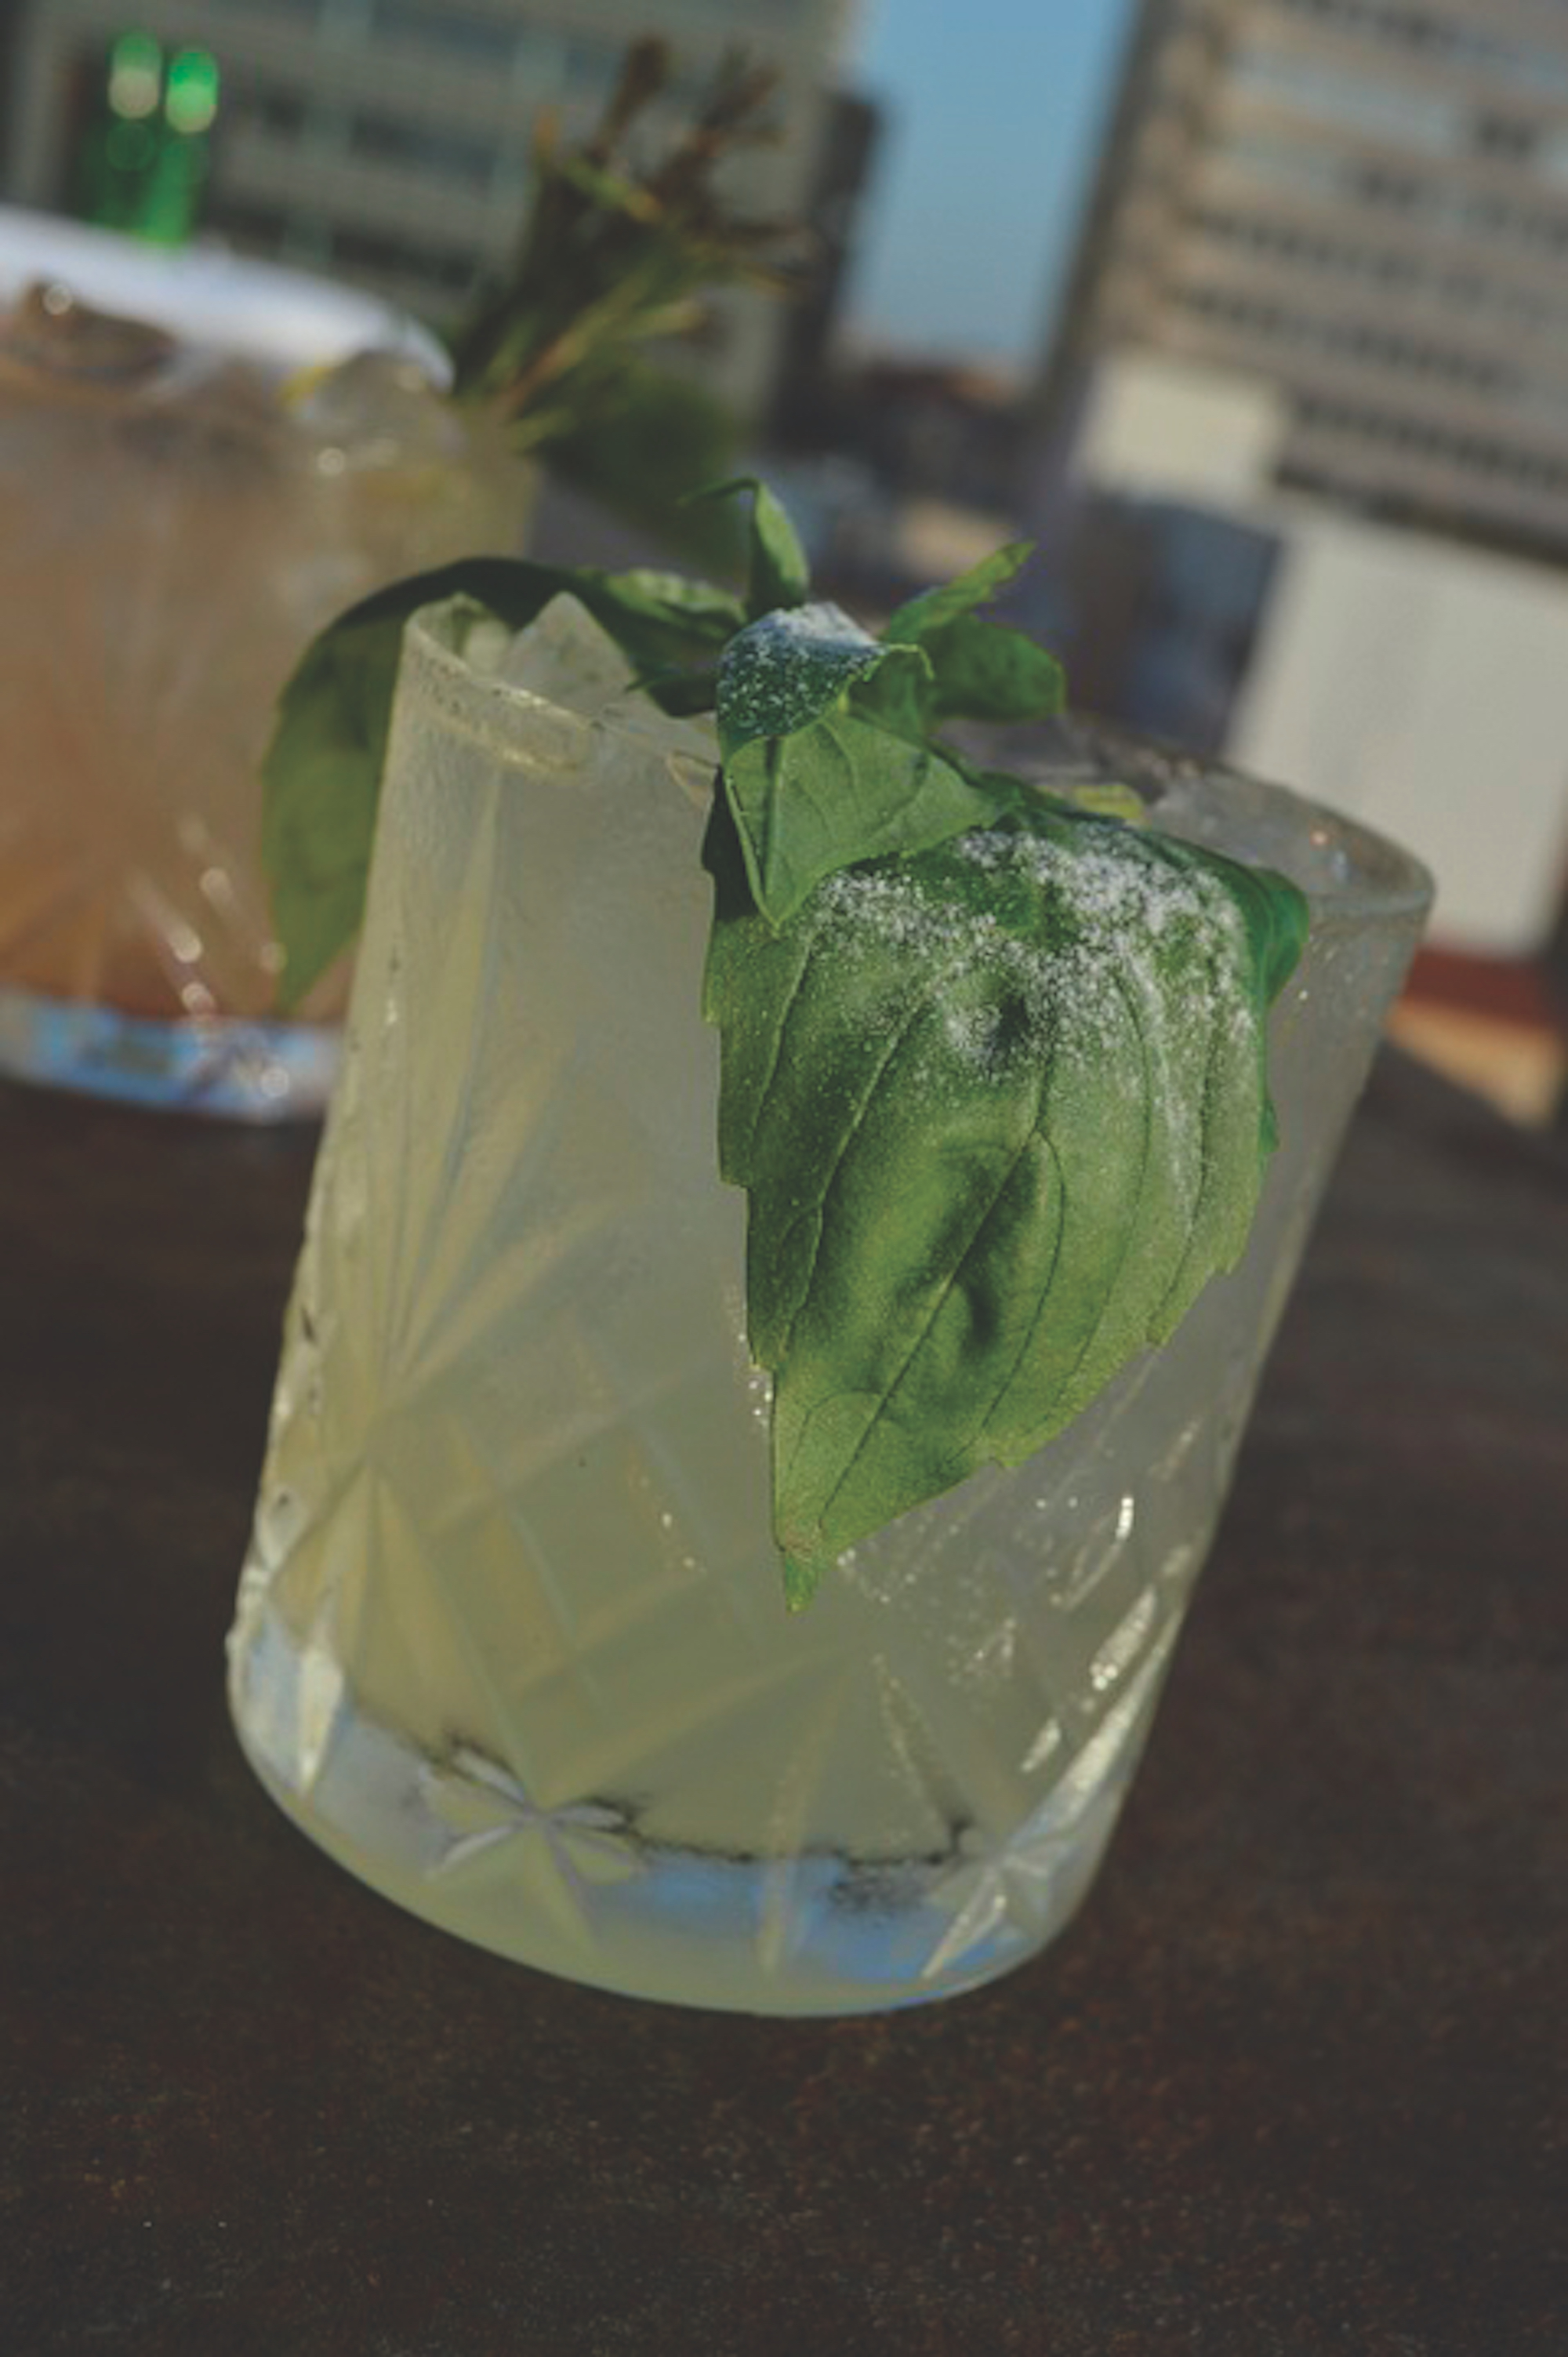 This week's Drink of the Week is a minty-mojito lemonade. It tastes even better with some ice in a blender. (Photo courtesy of common.wikimedia.org)